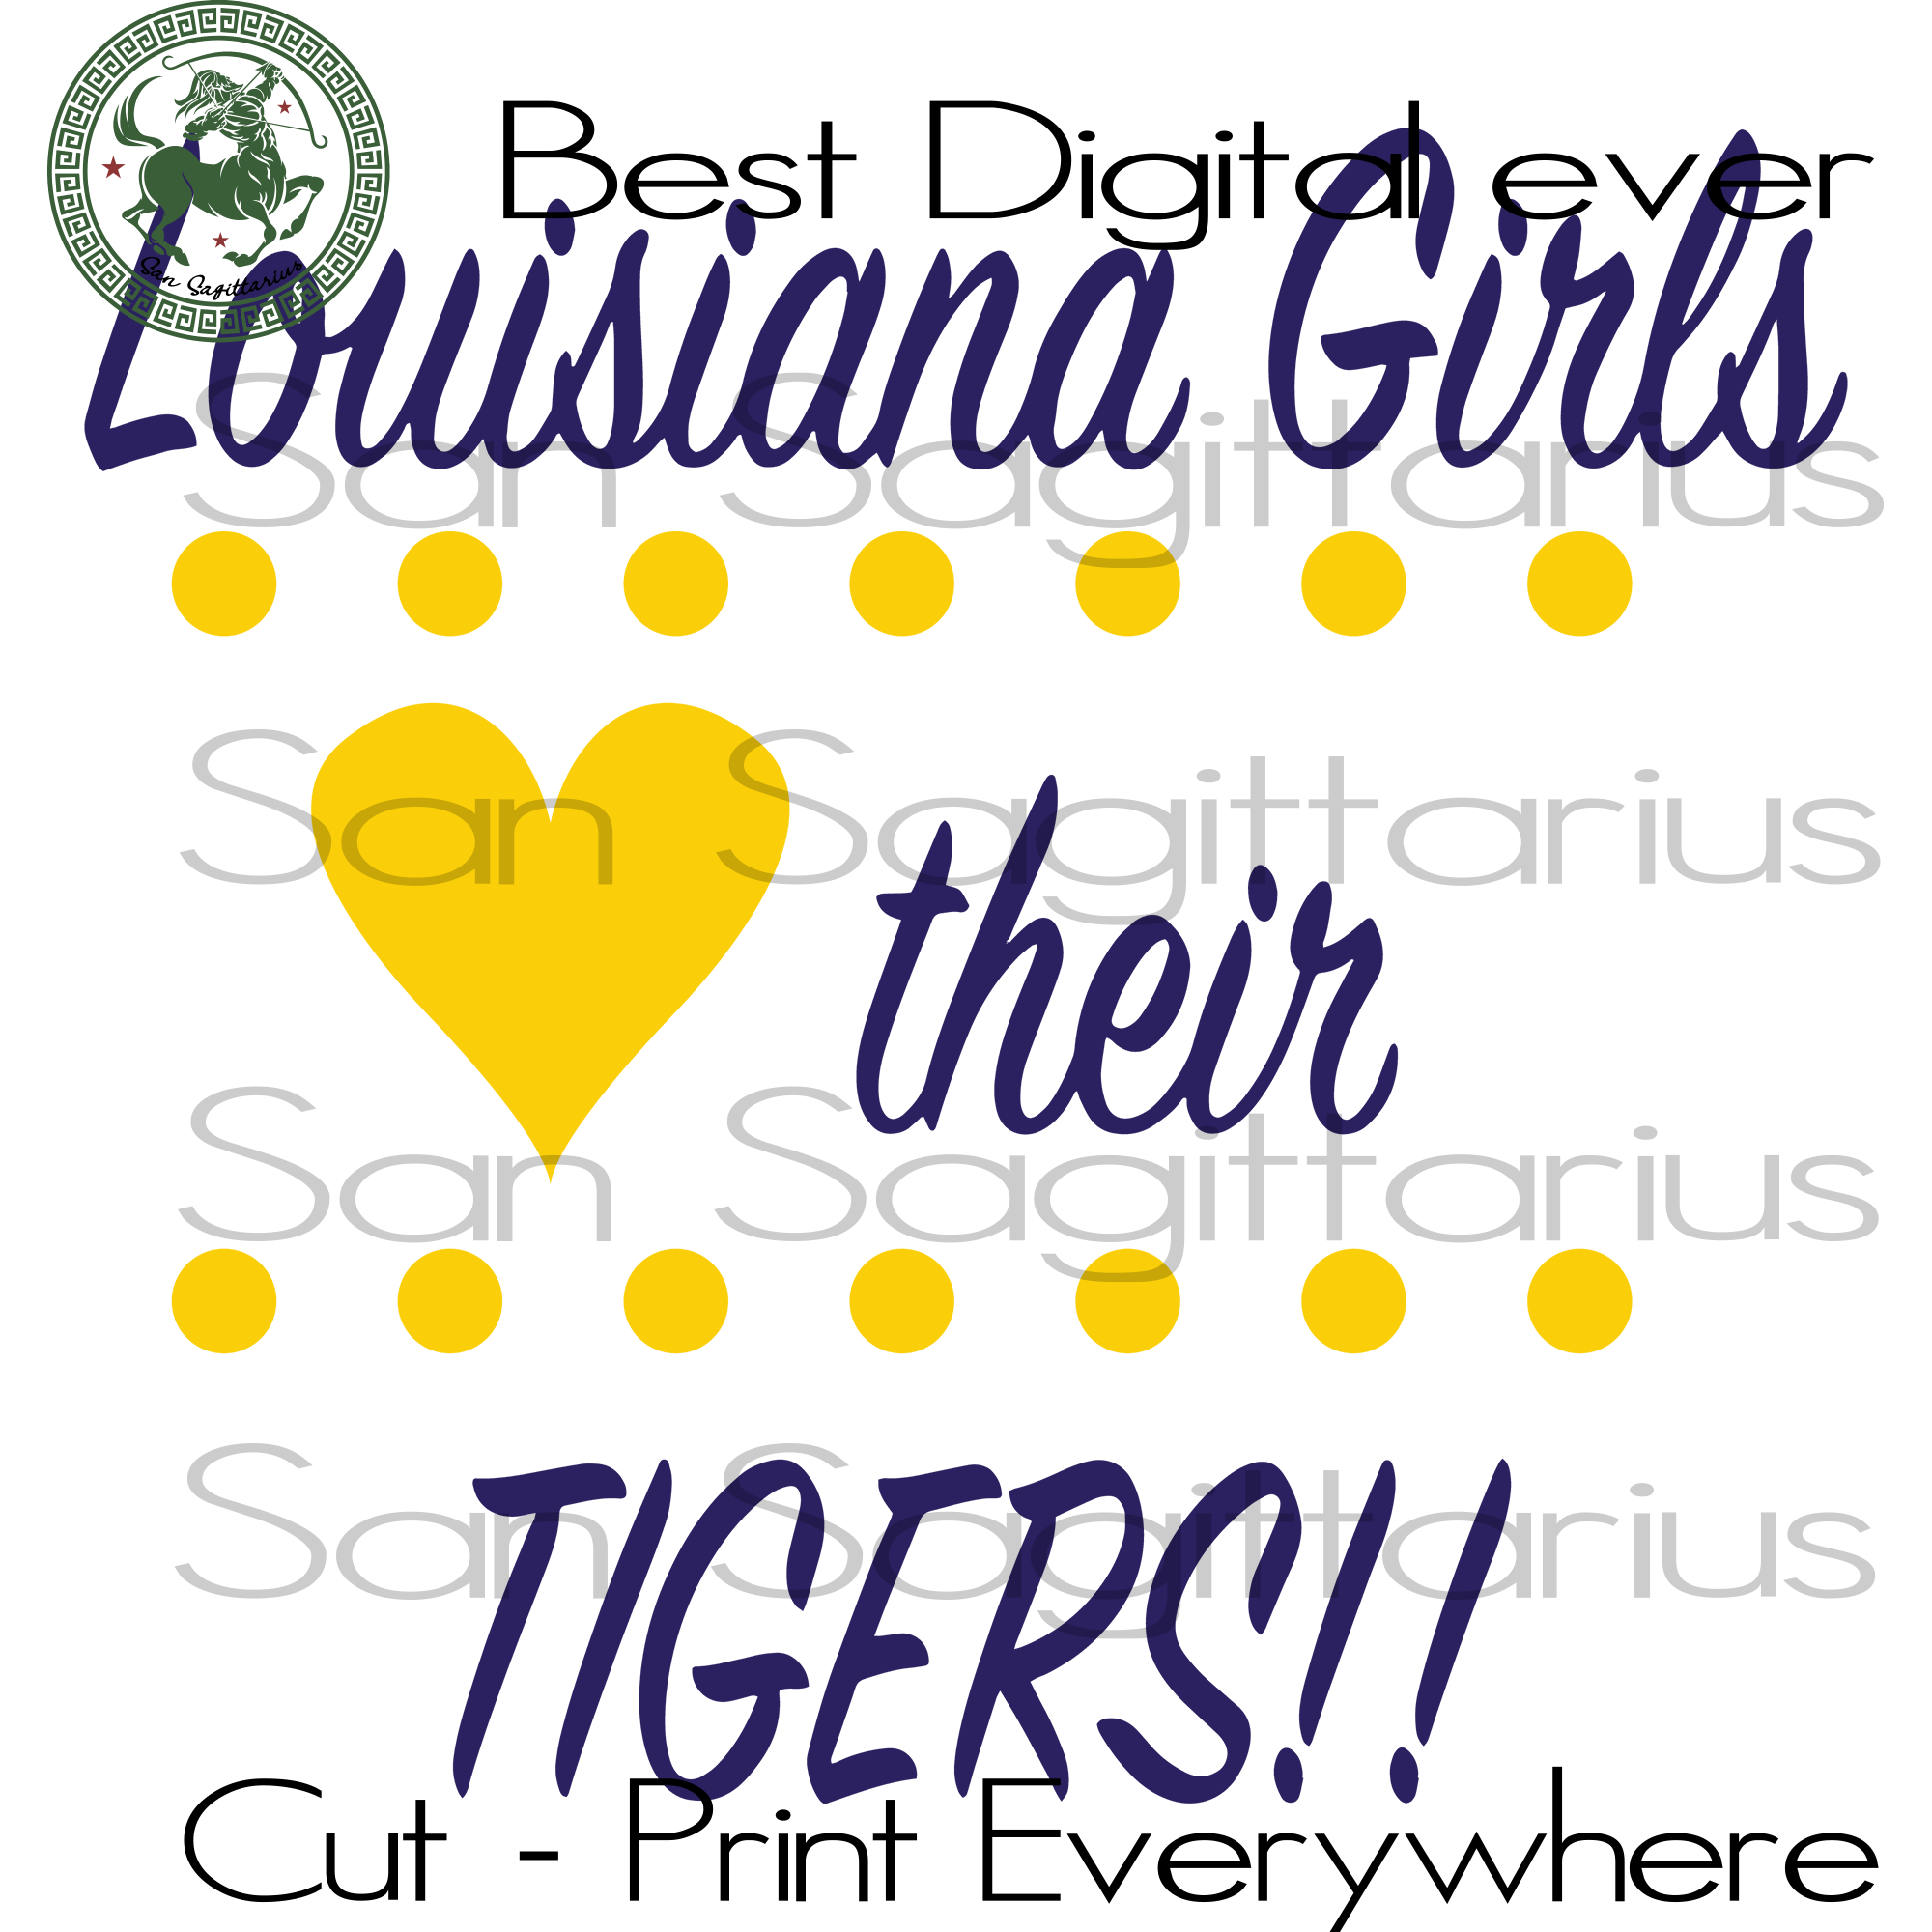 Louisiana Girls their Tiger SVG Files For Cricut Silhouette Instant Download | San Sagittarius